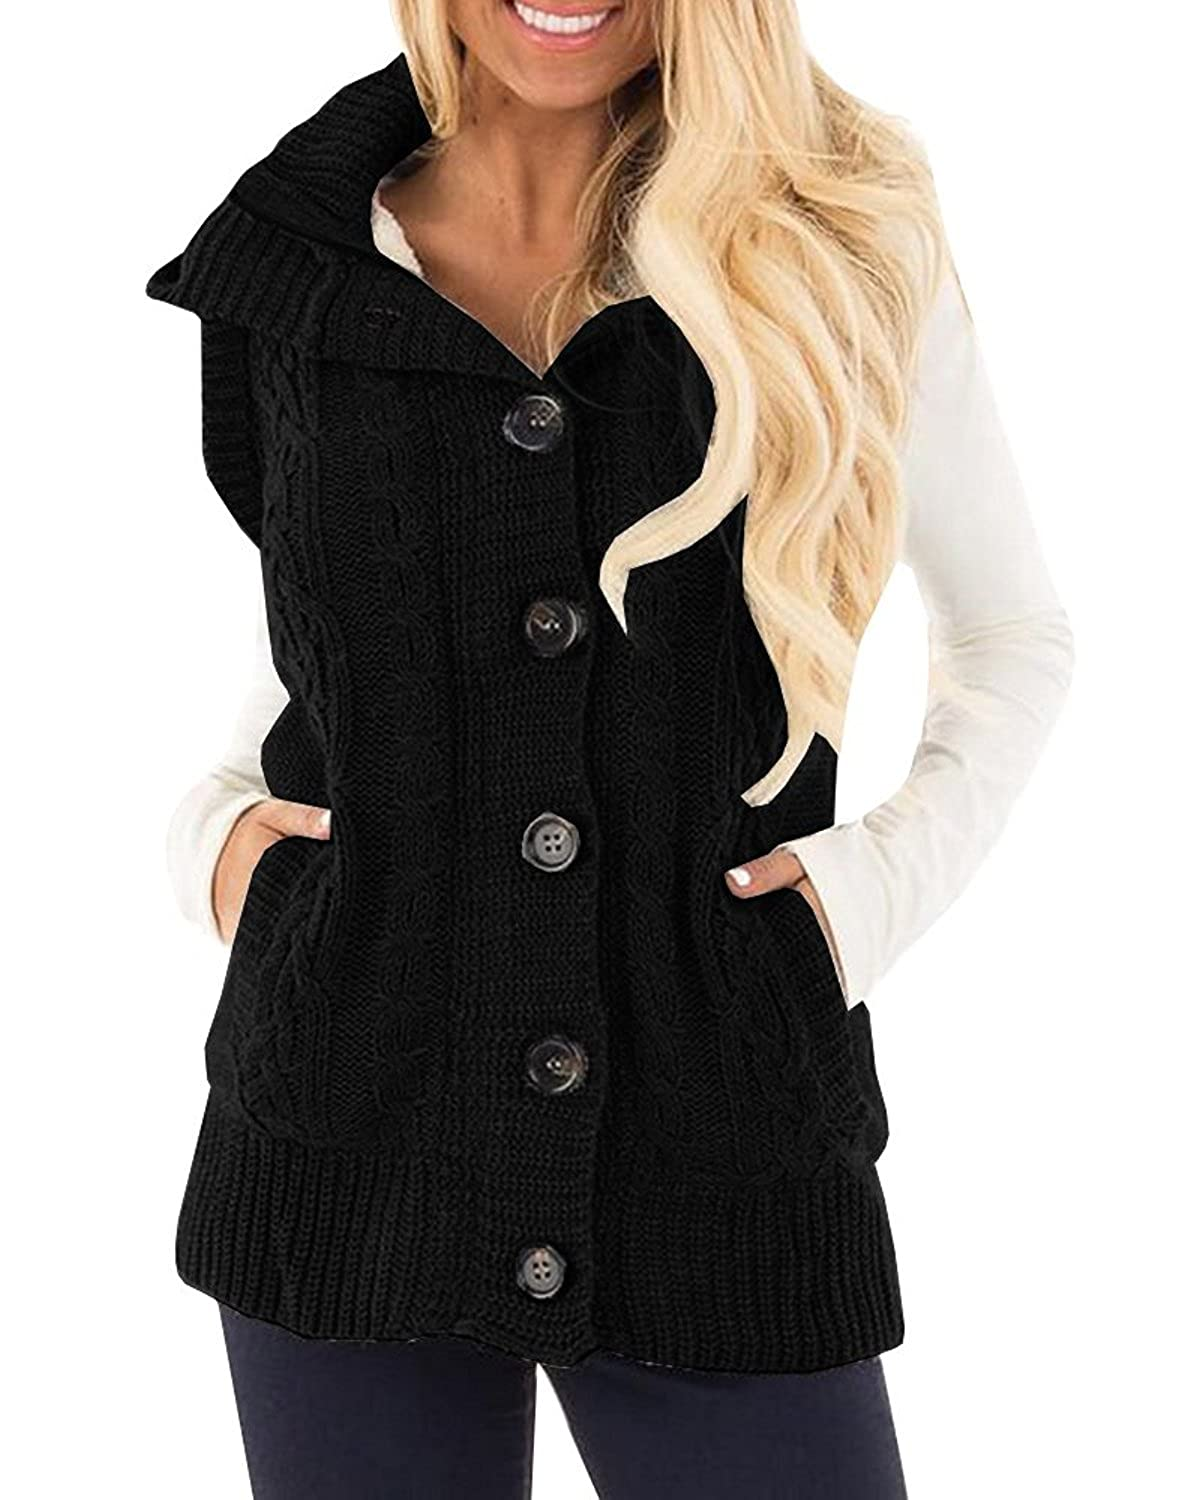 Farktop Women's Sleeveless Sherpa Fleece Cardigan Faux Fur Fuzzy ...